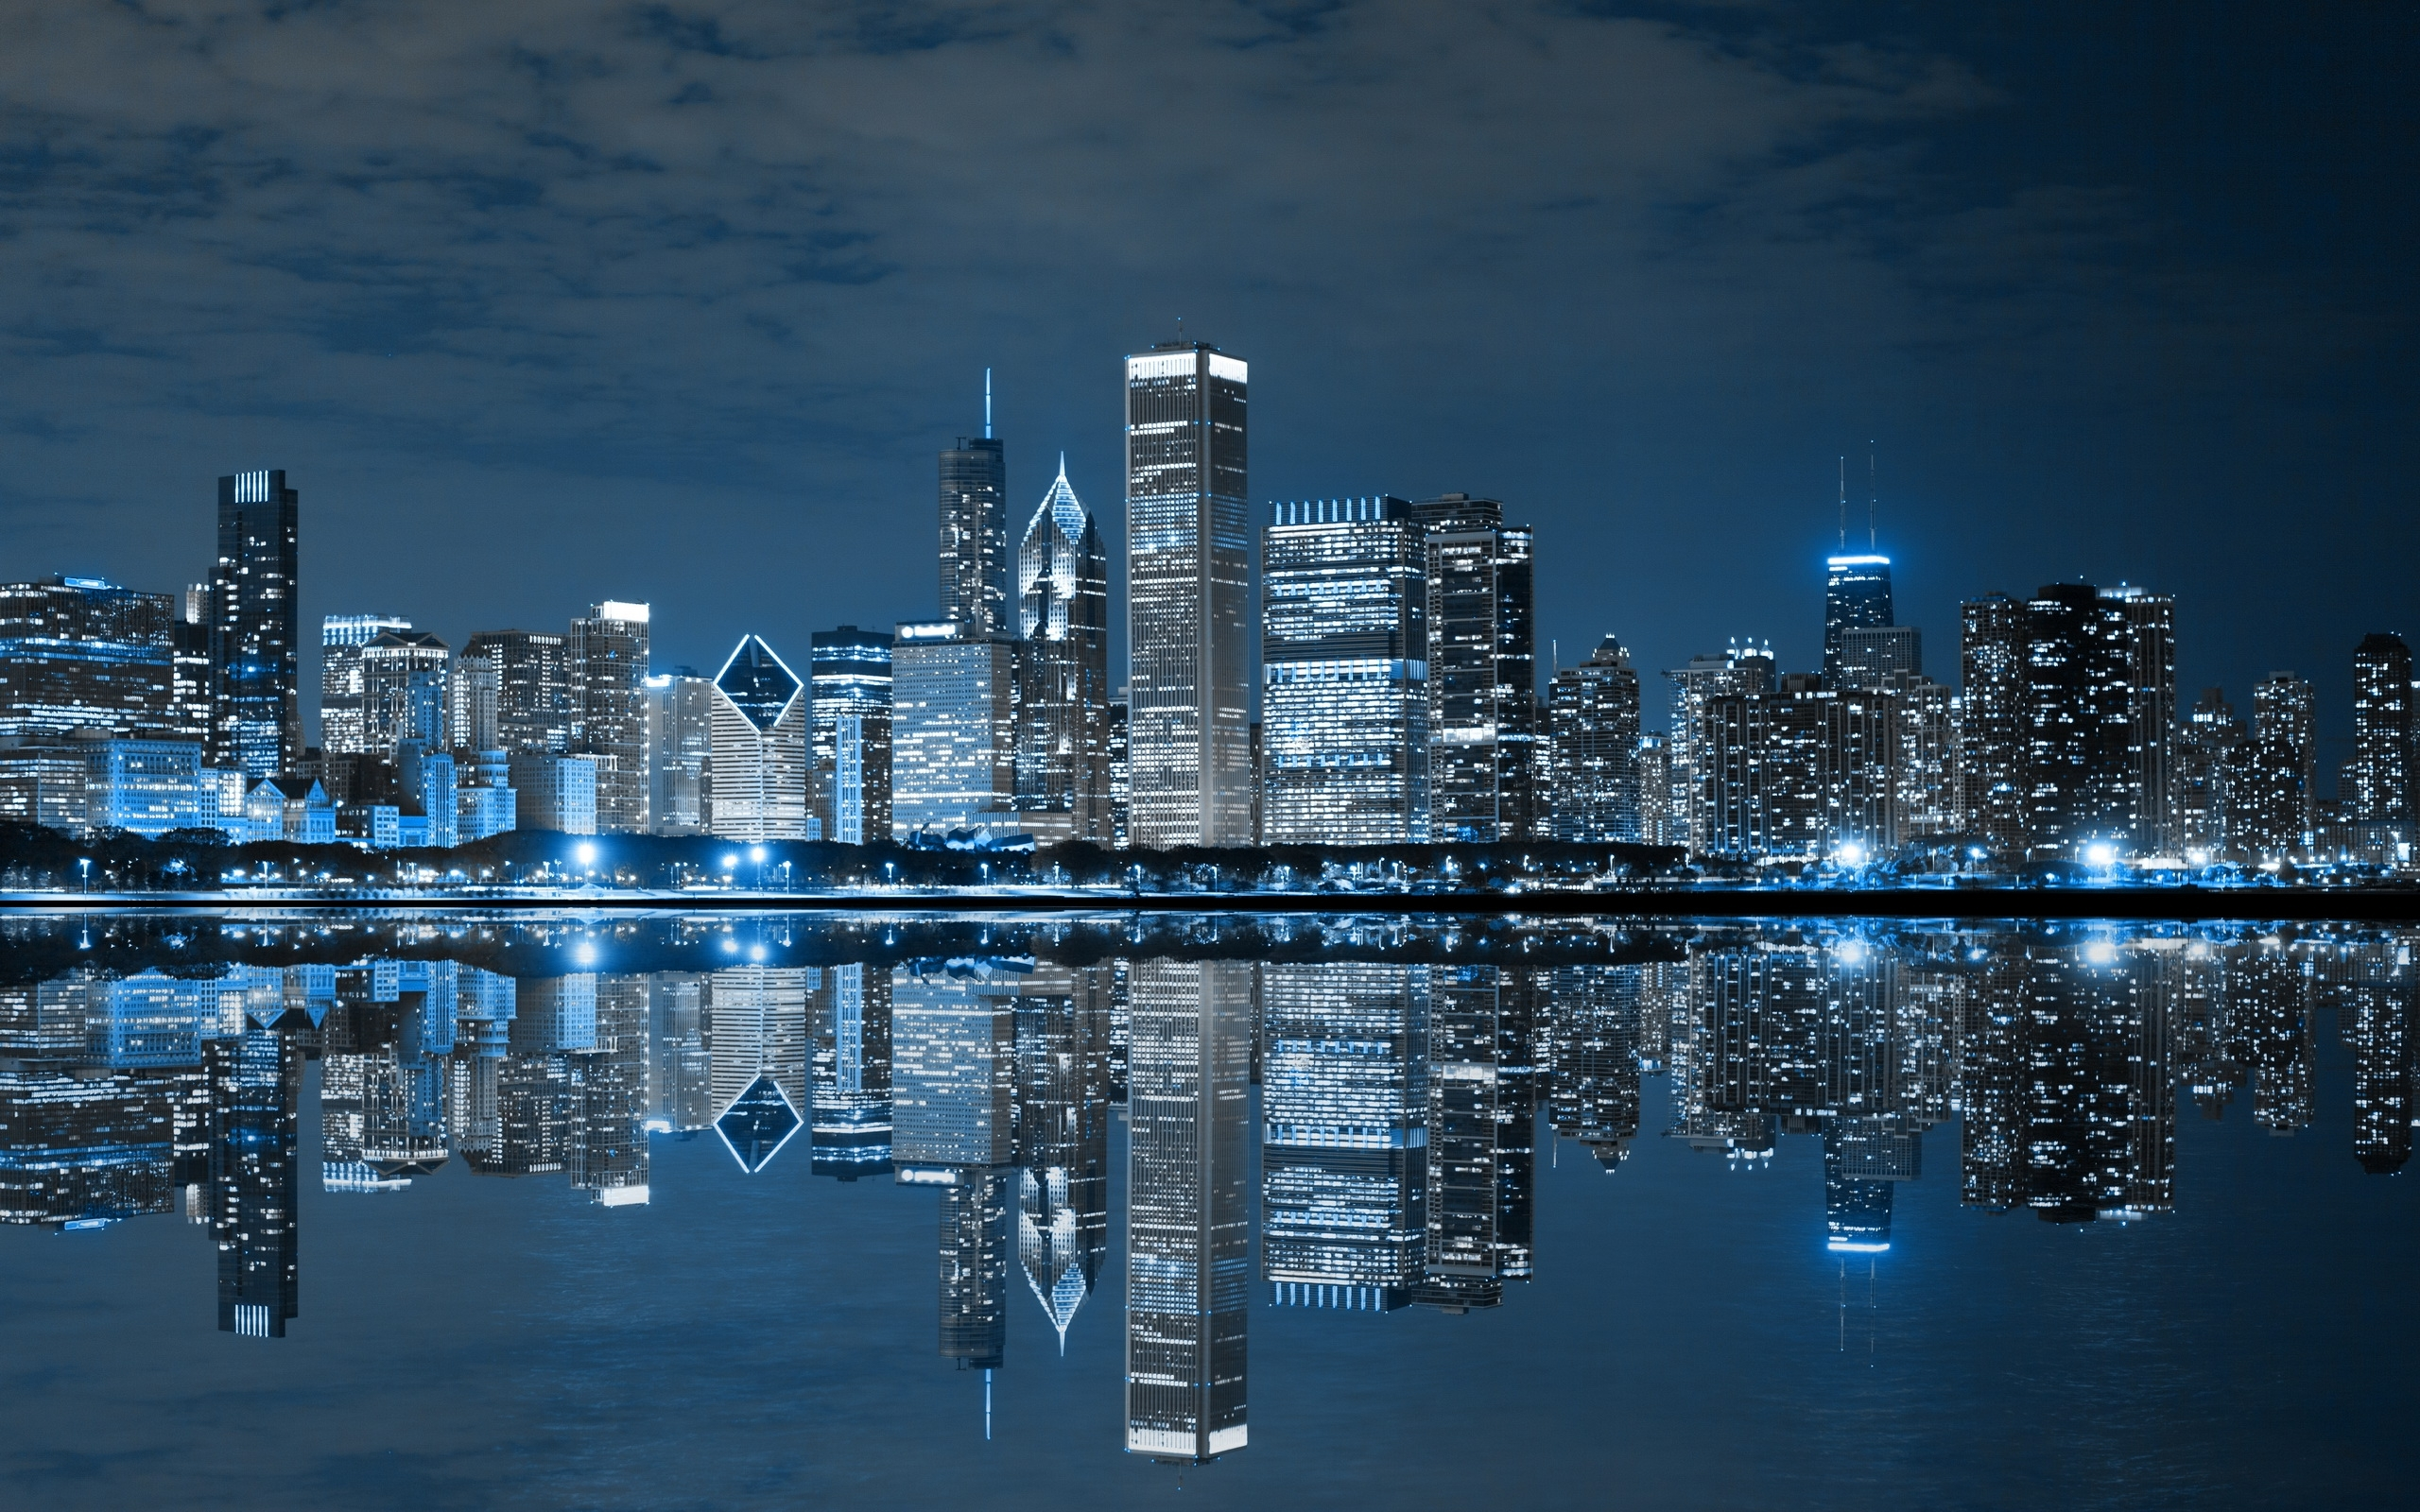 223 chicago hd wallpapers | background images - wallpaper abyss